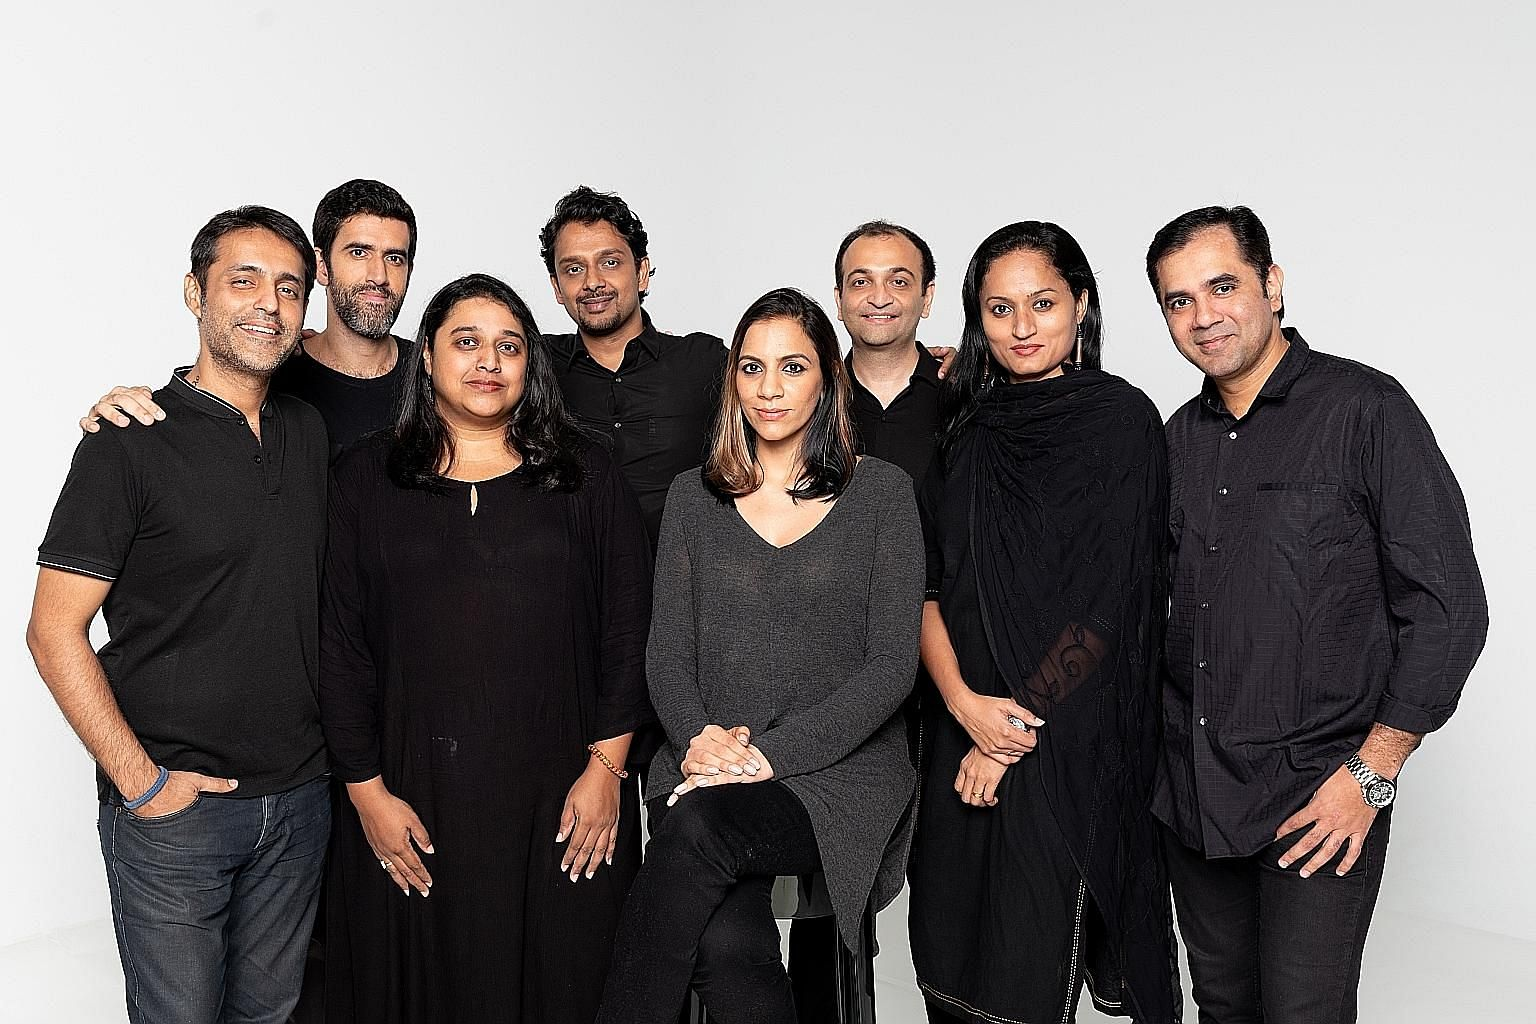 Directed by Sharul Channa (above, fifth from left), Papa stars (from left) Neeraj Sujanani, Rishi Budhrani, Rachita Arke, Raghu Narayanan, Vishal Khattri, Veena Bangera and Amit Joshi.